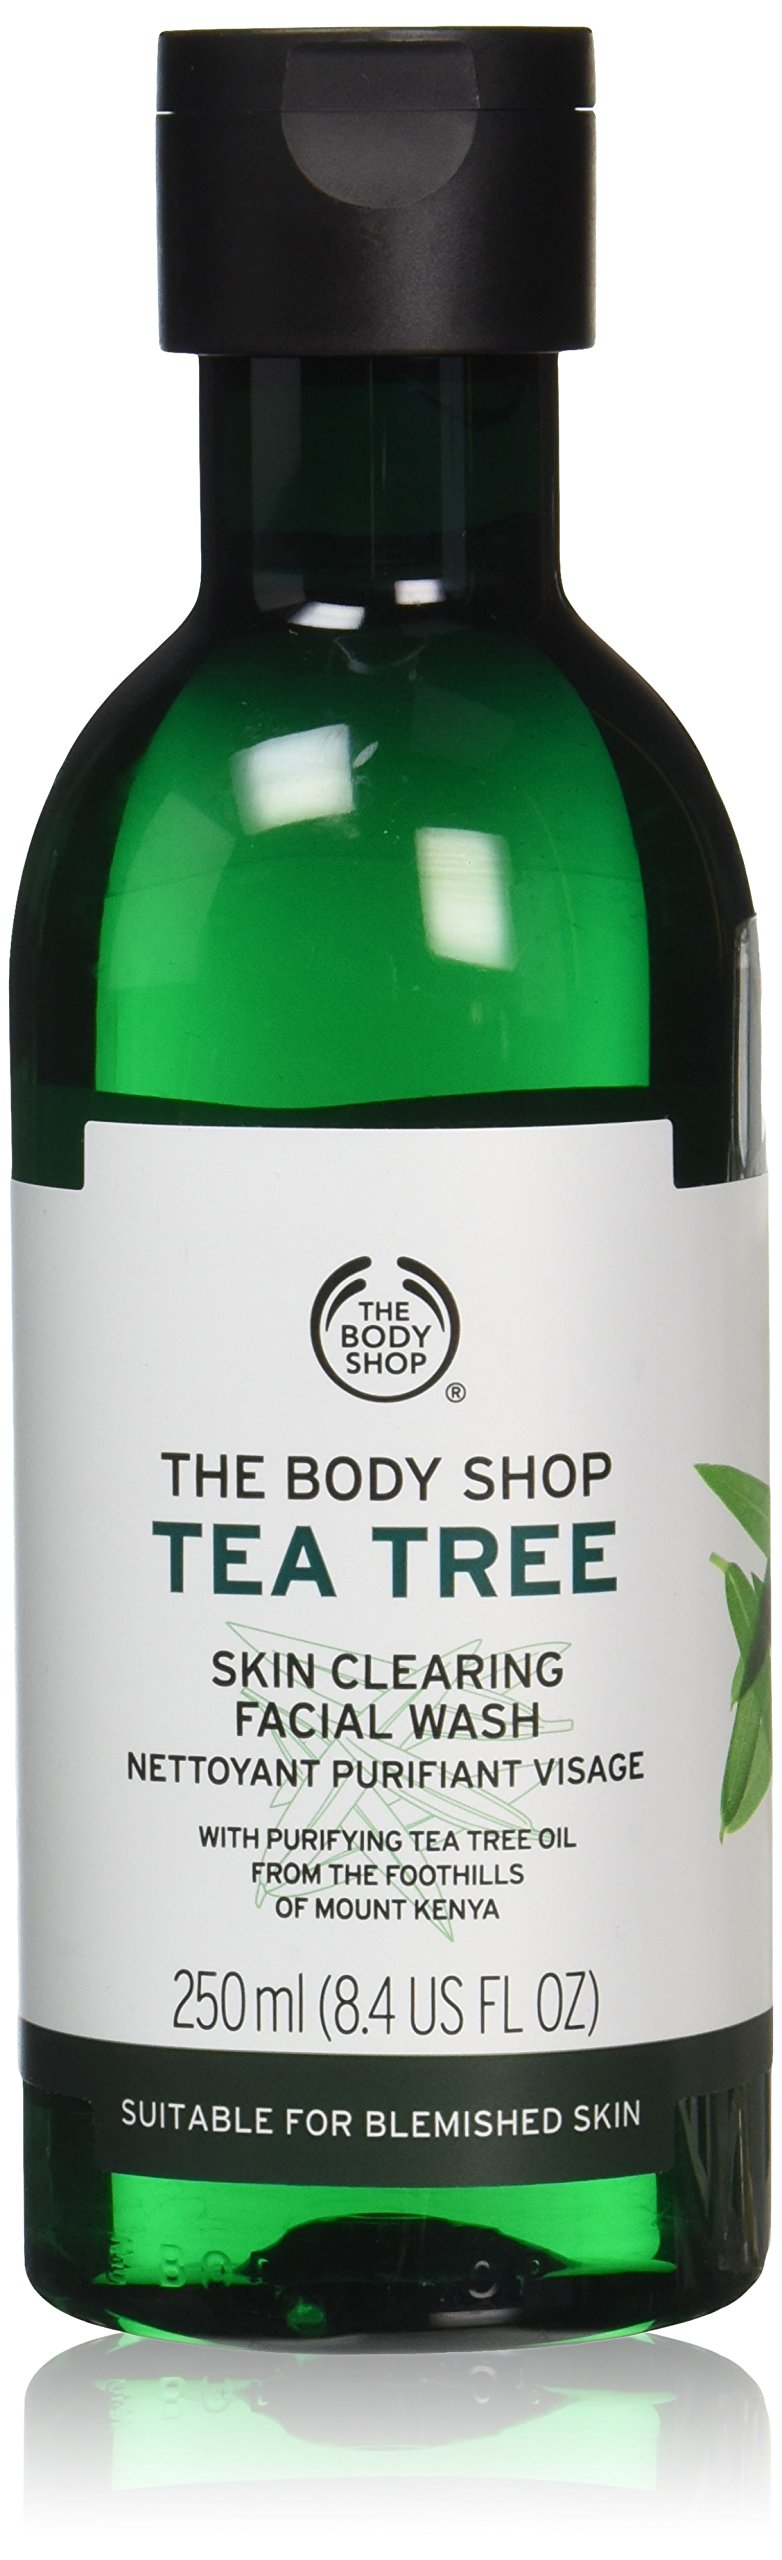 The Body Shop Tea Tree Skin Clearing Facial Wash, 8.4 Fl Oz (Vegan) by The Body Shop